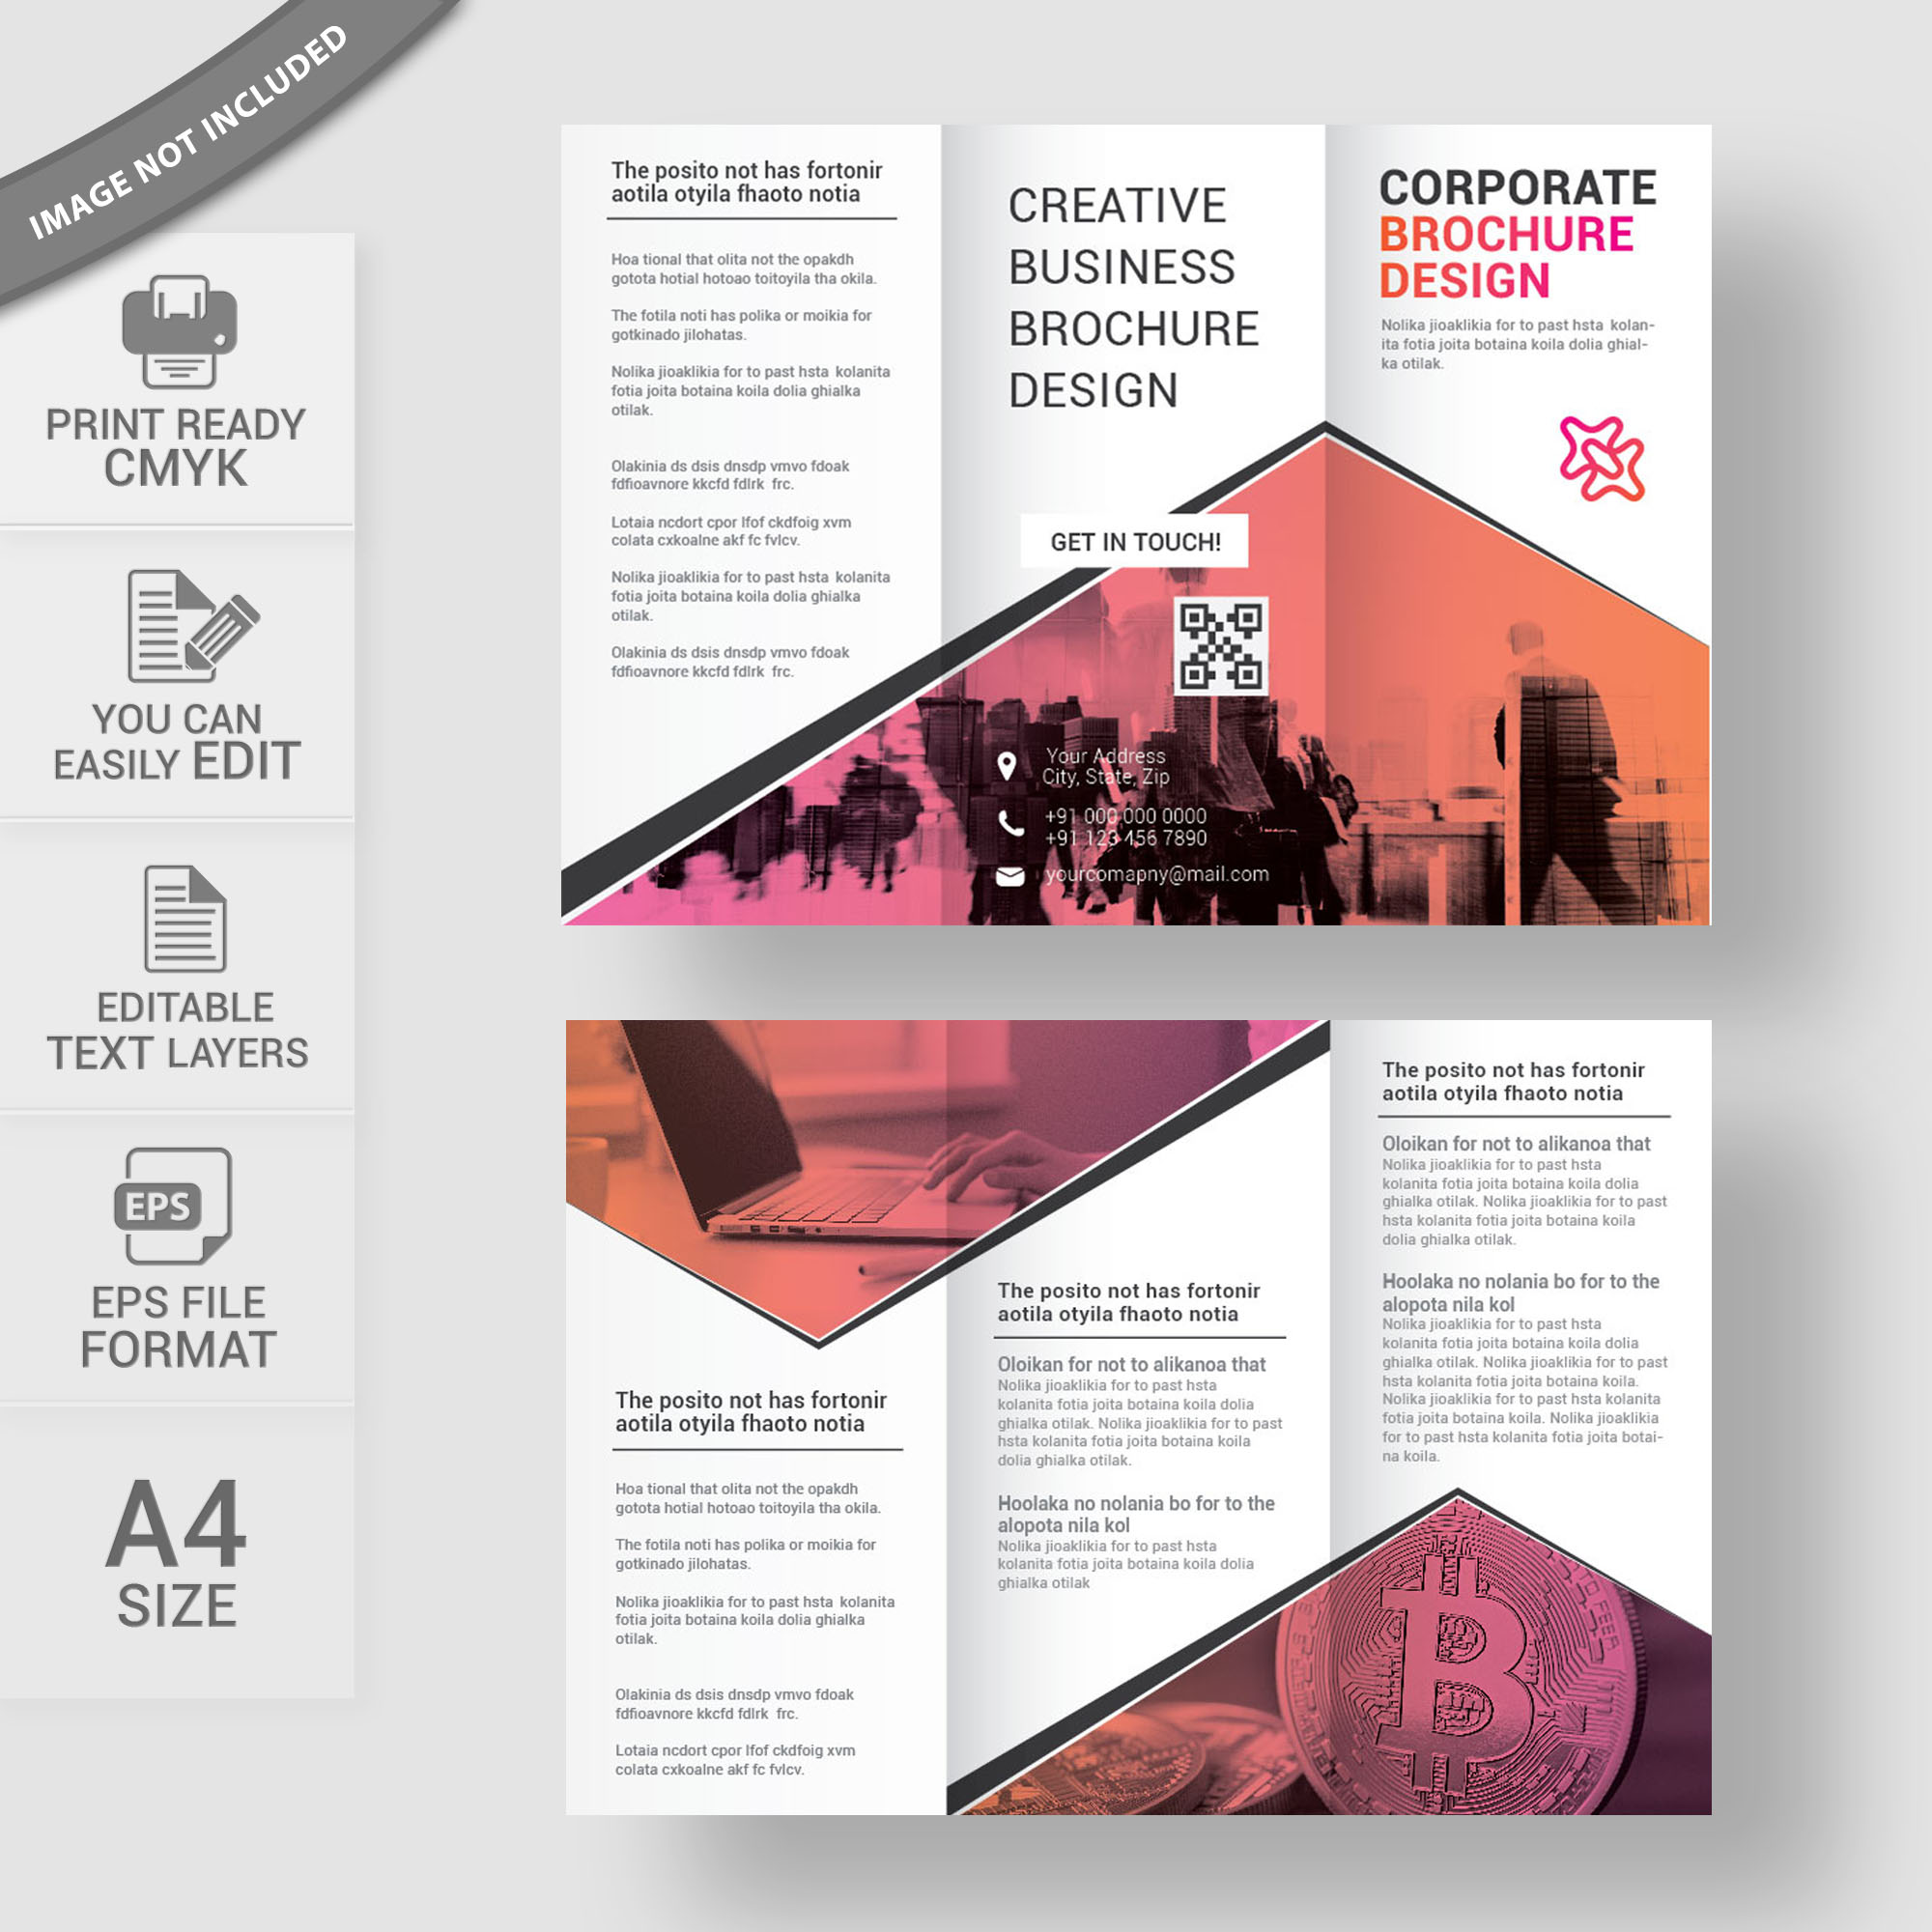 Business Brochure Template Free Download Wisxicom - Business brochure templates free download